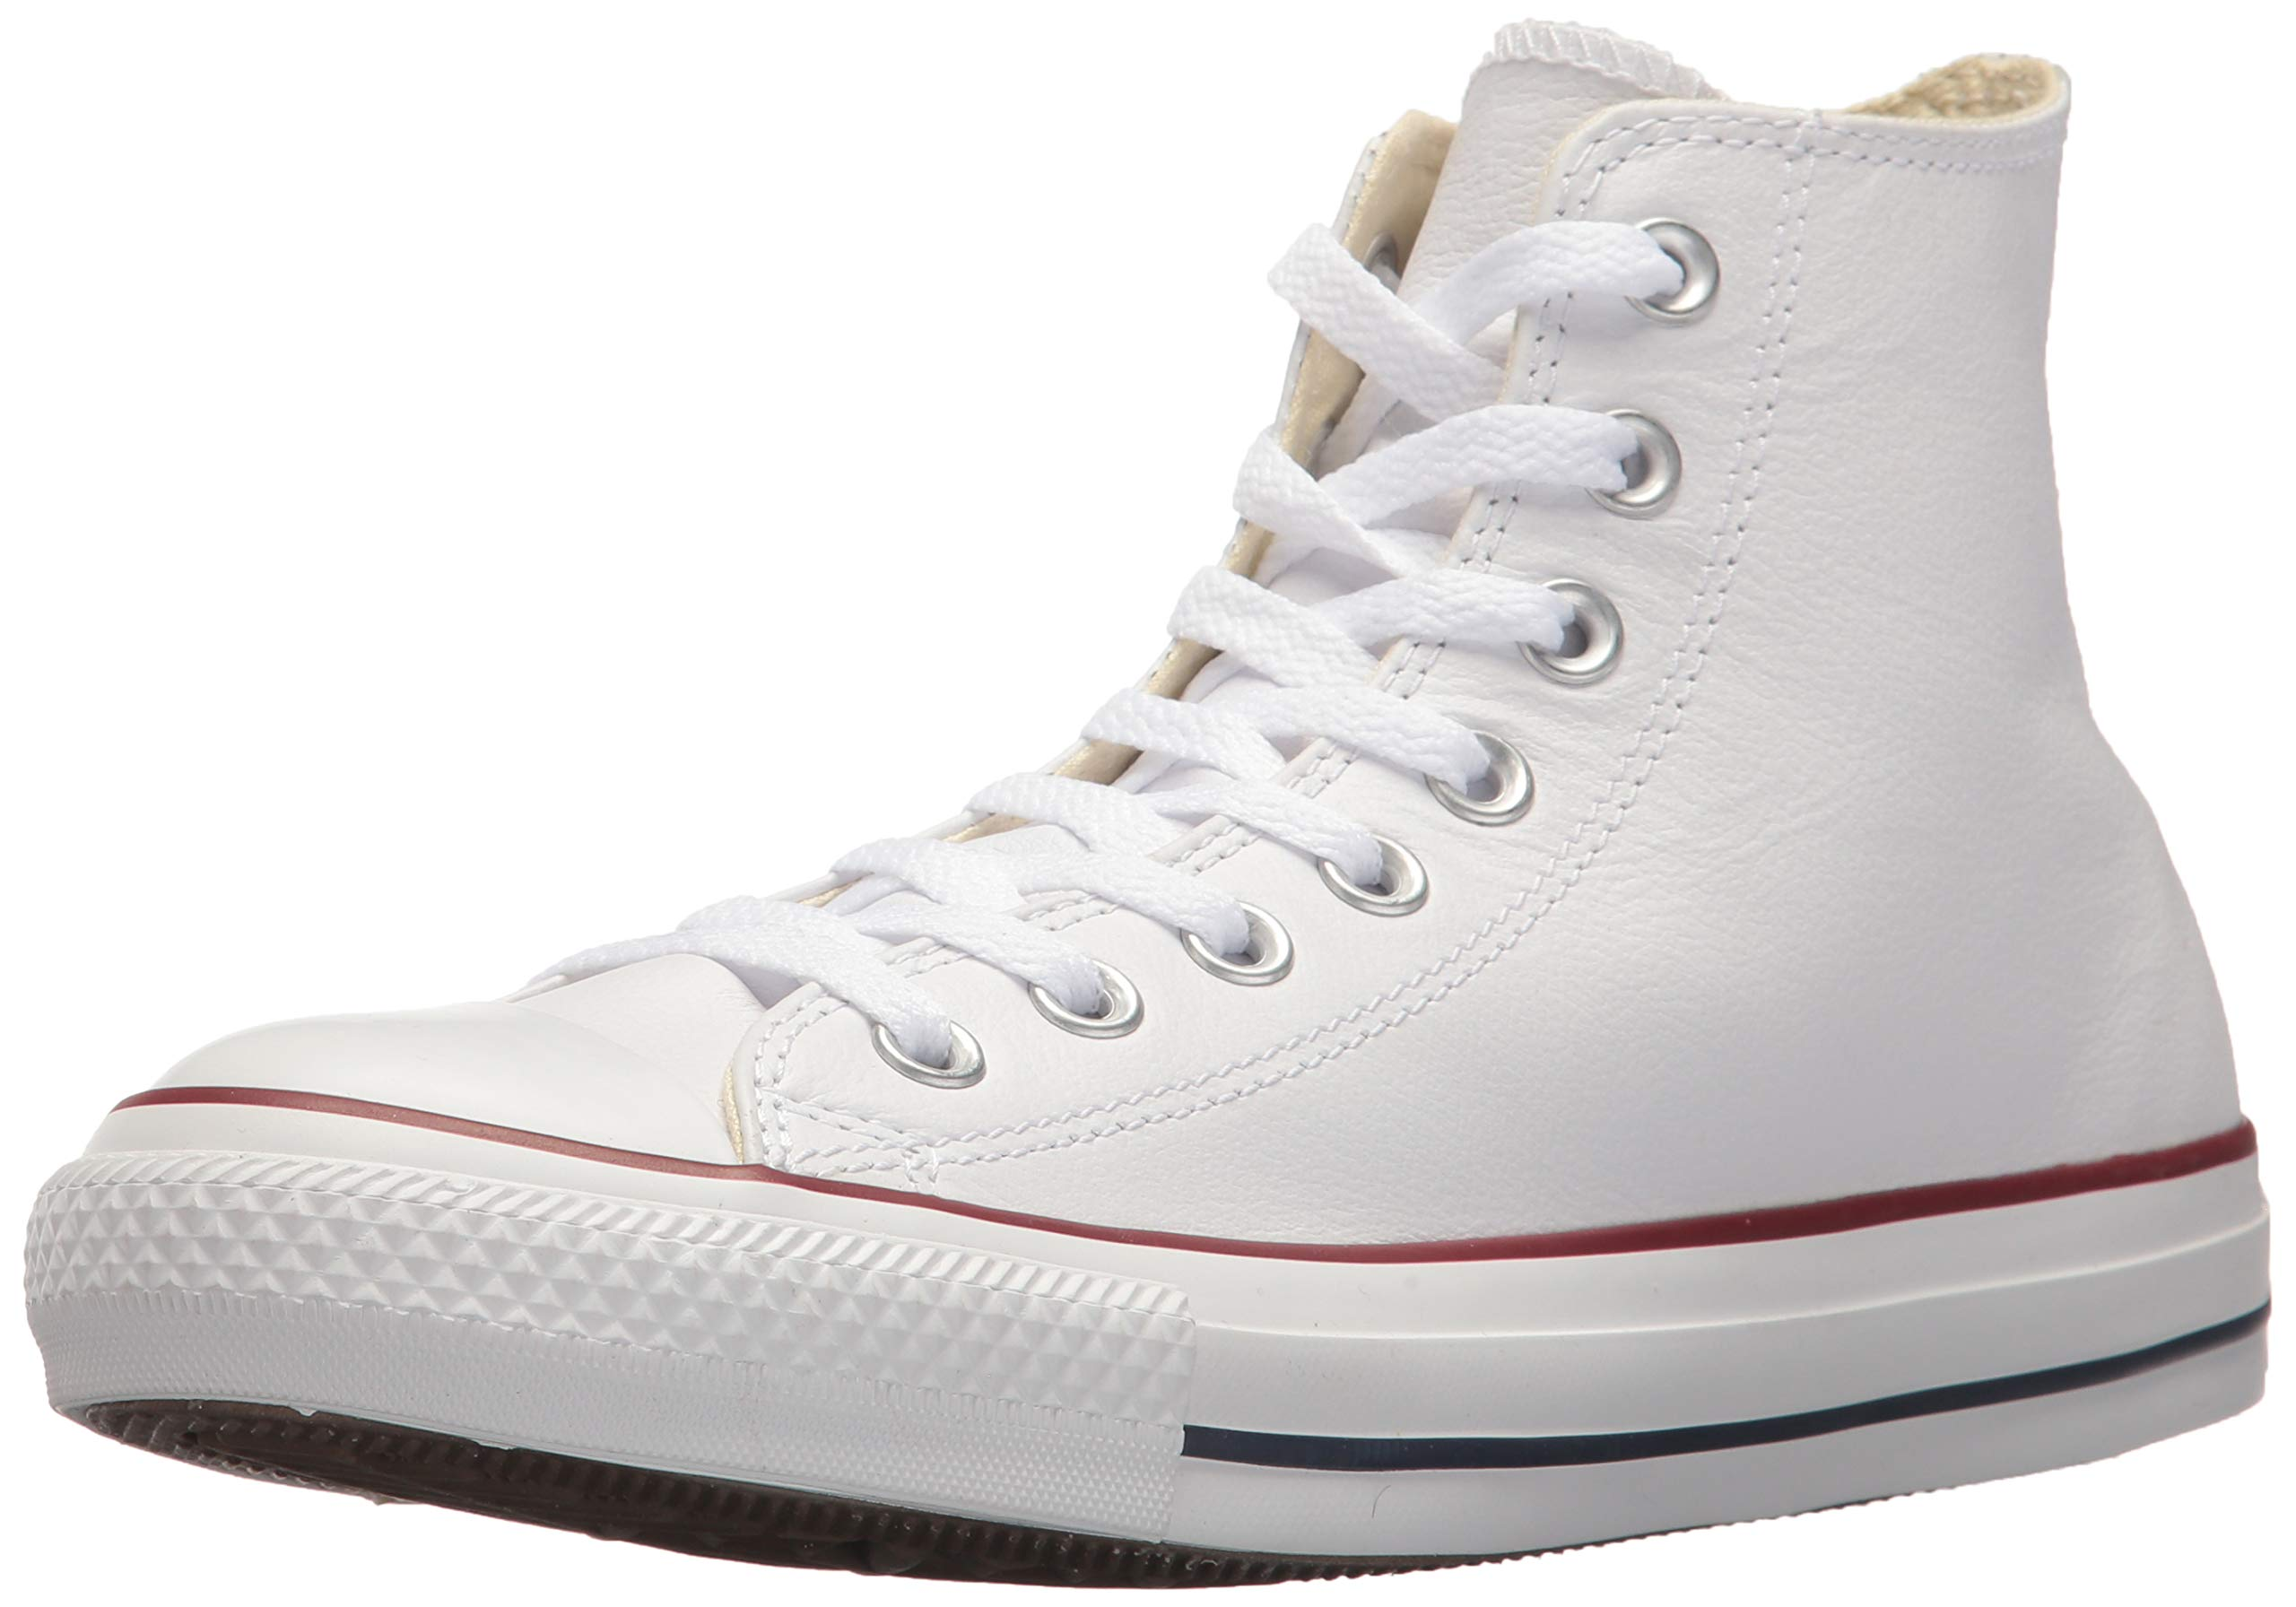 4c722d2eb12 Galleon - Converse Chuck Taylor All Star Leather High Top Sneaker ...